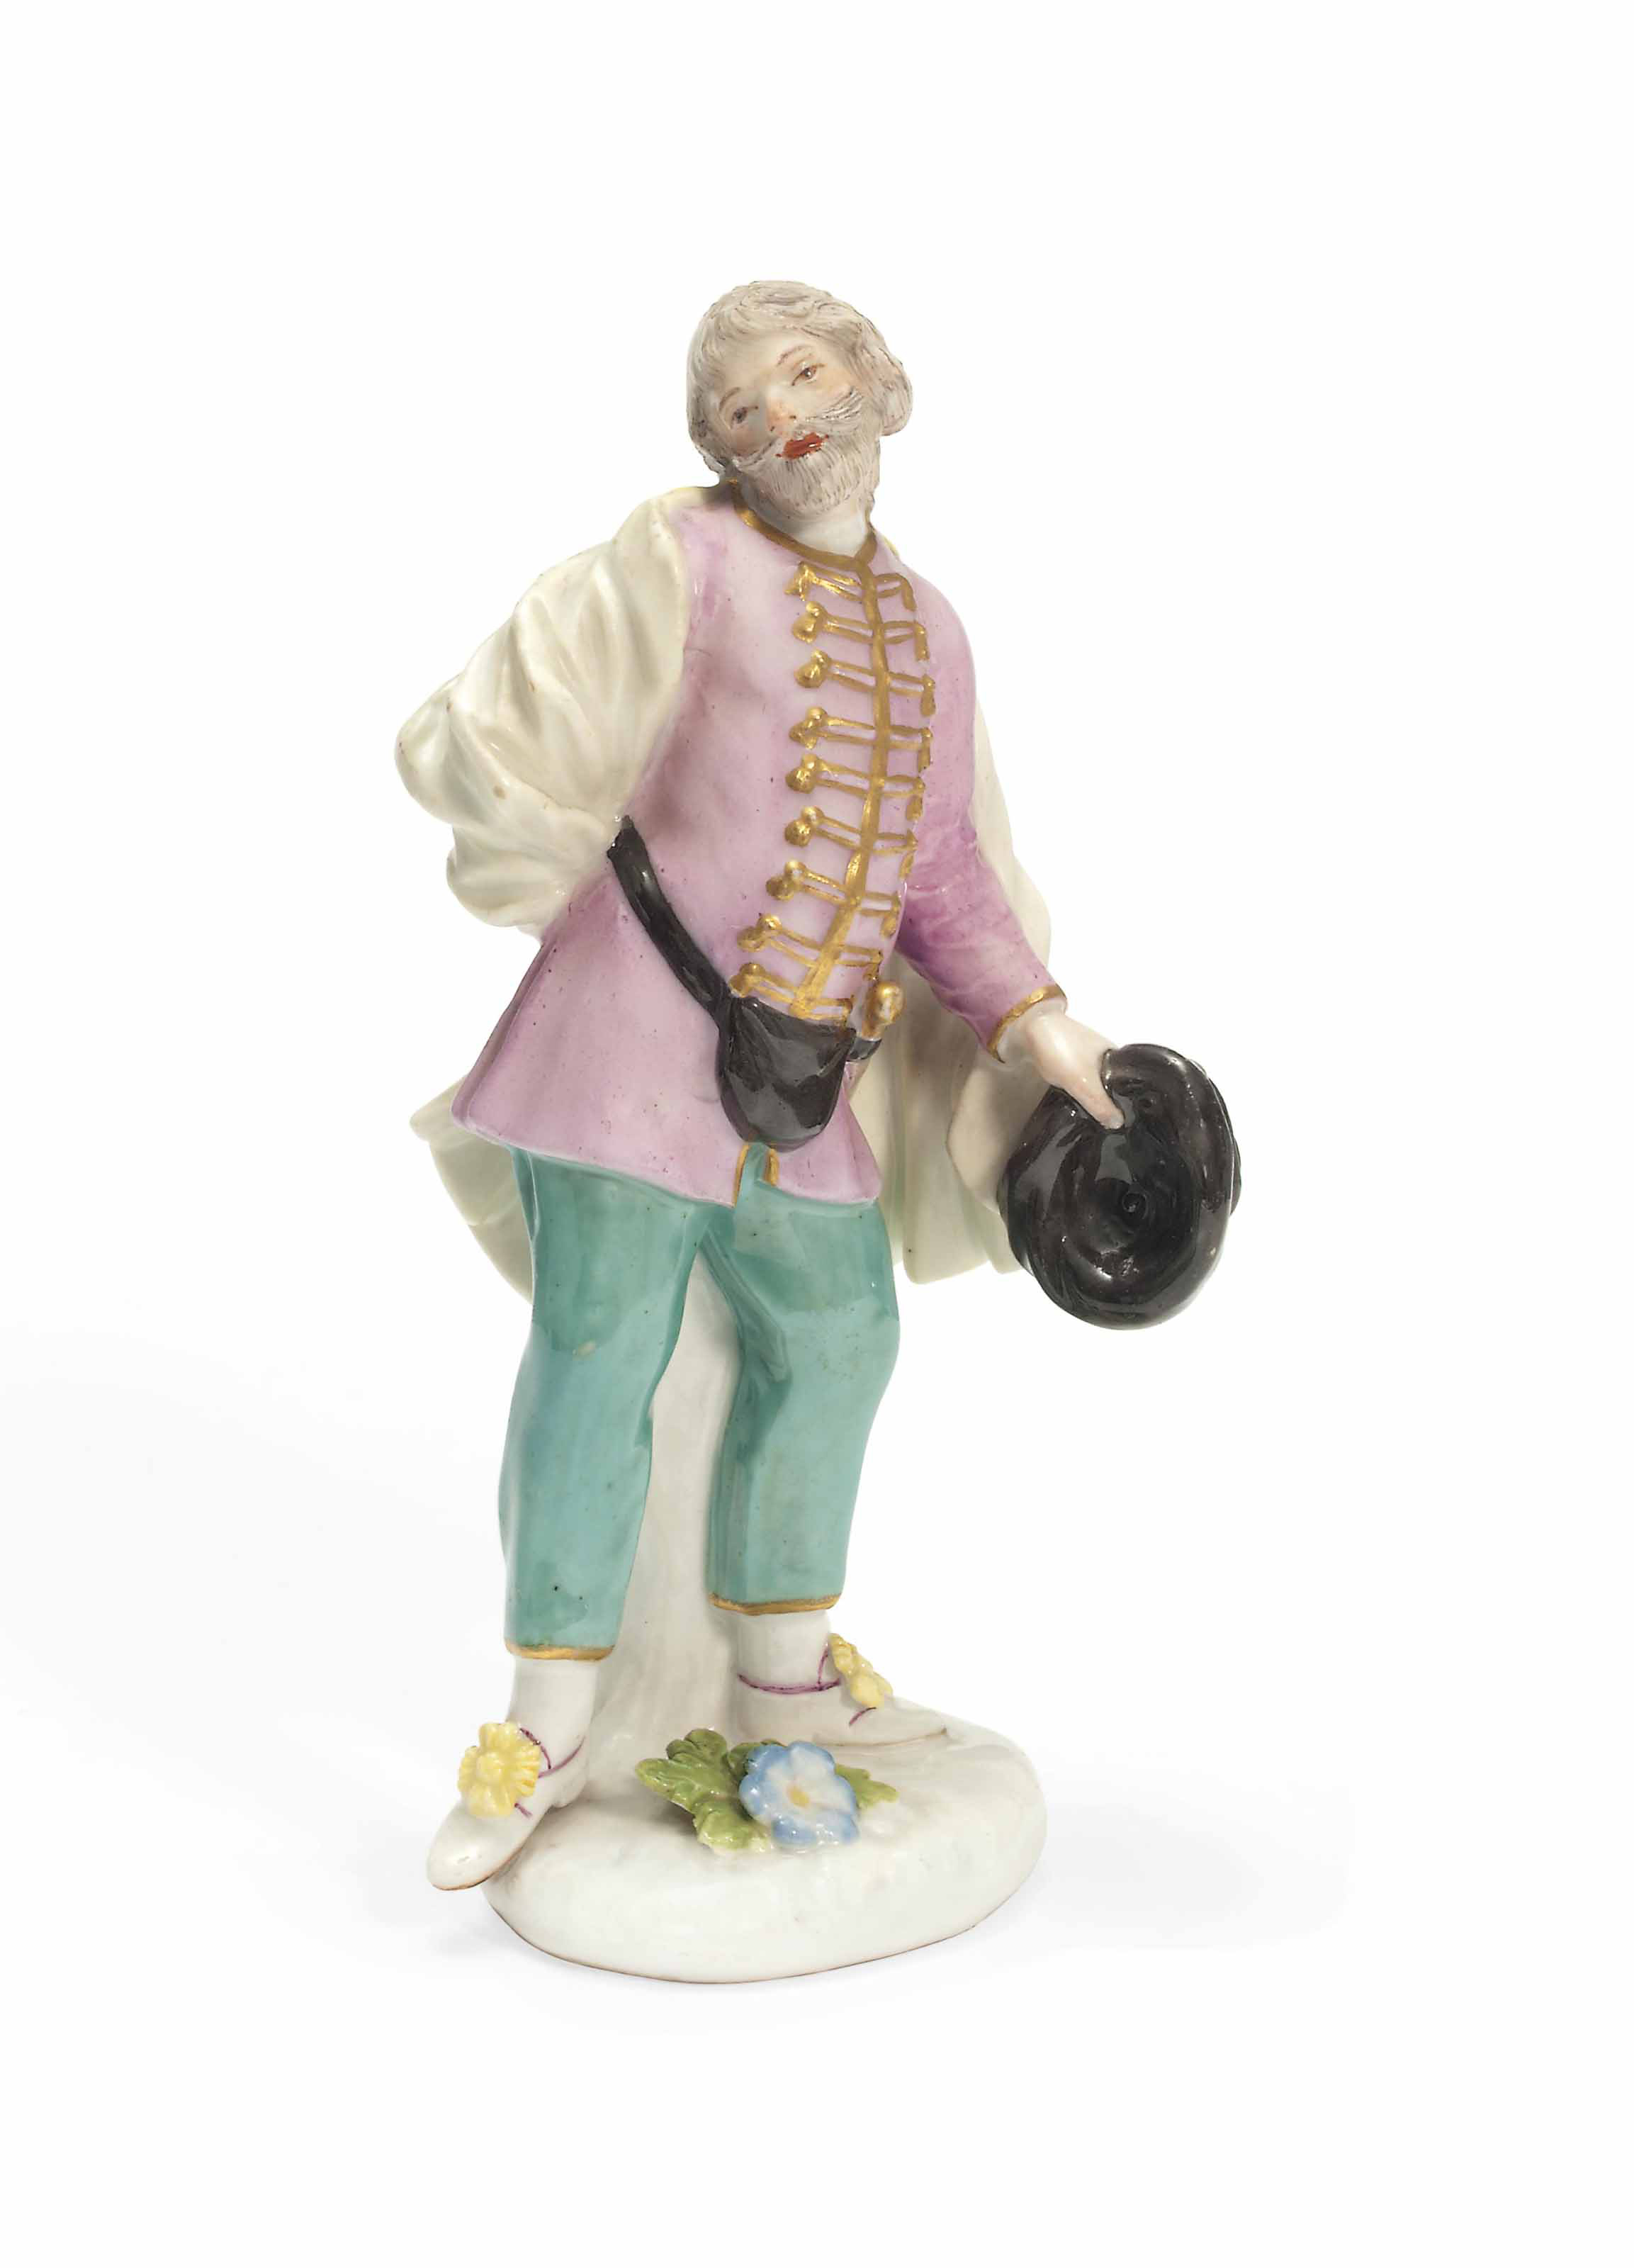 A MEISSEN FIGURE OF SCAPIN FRO